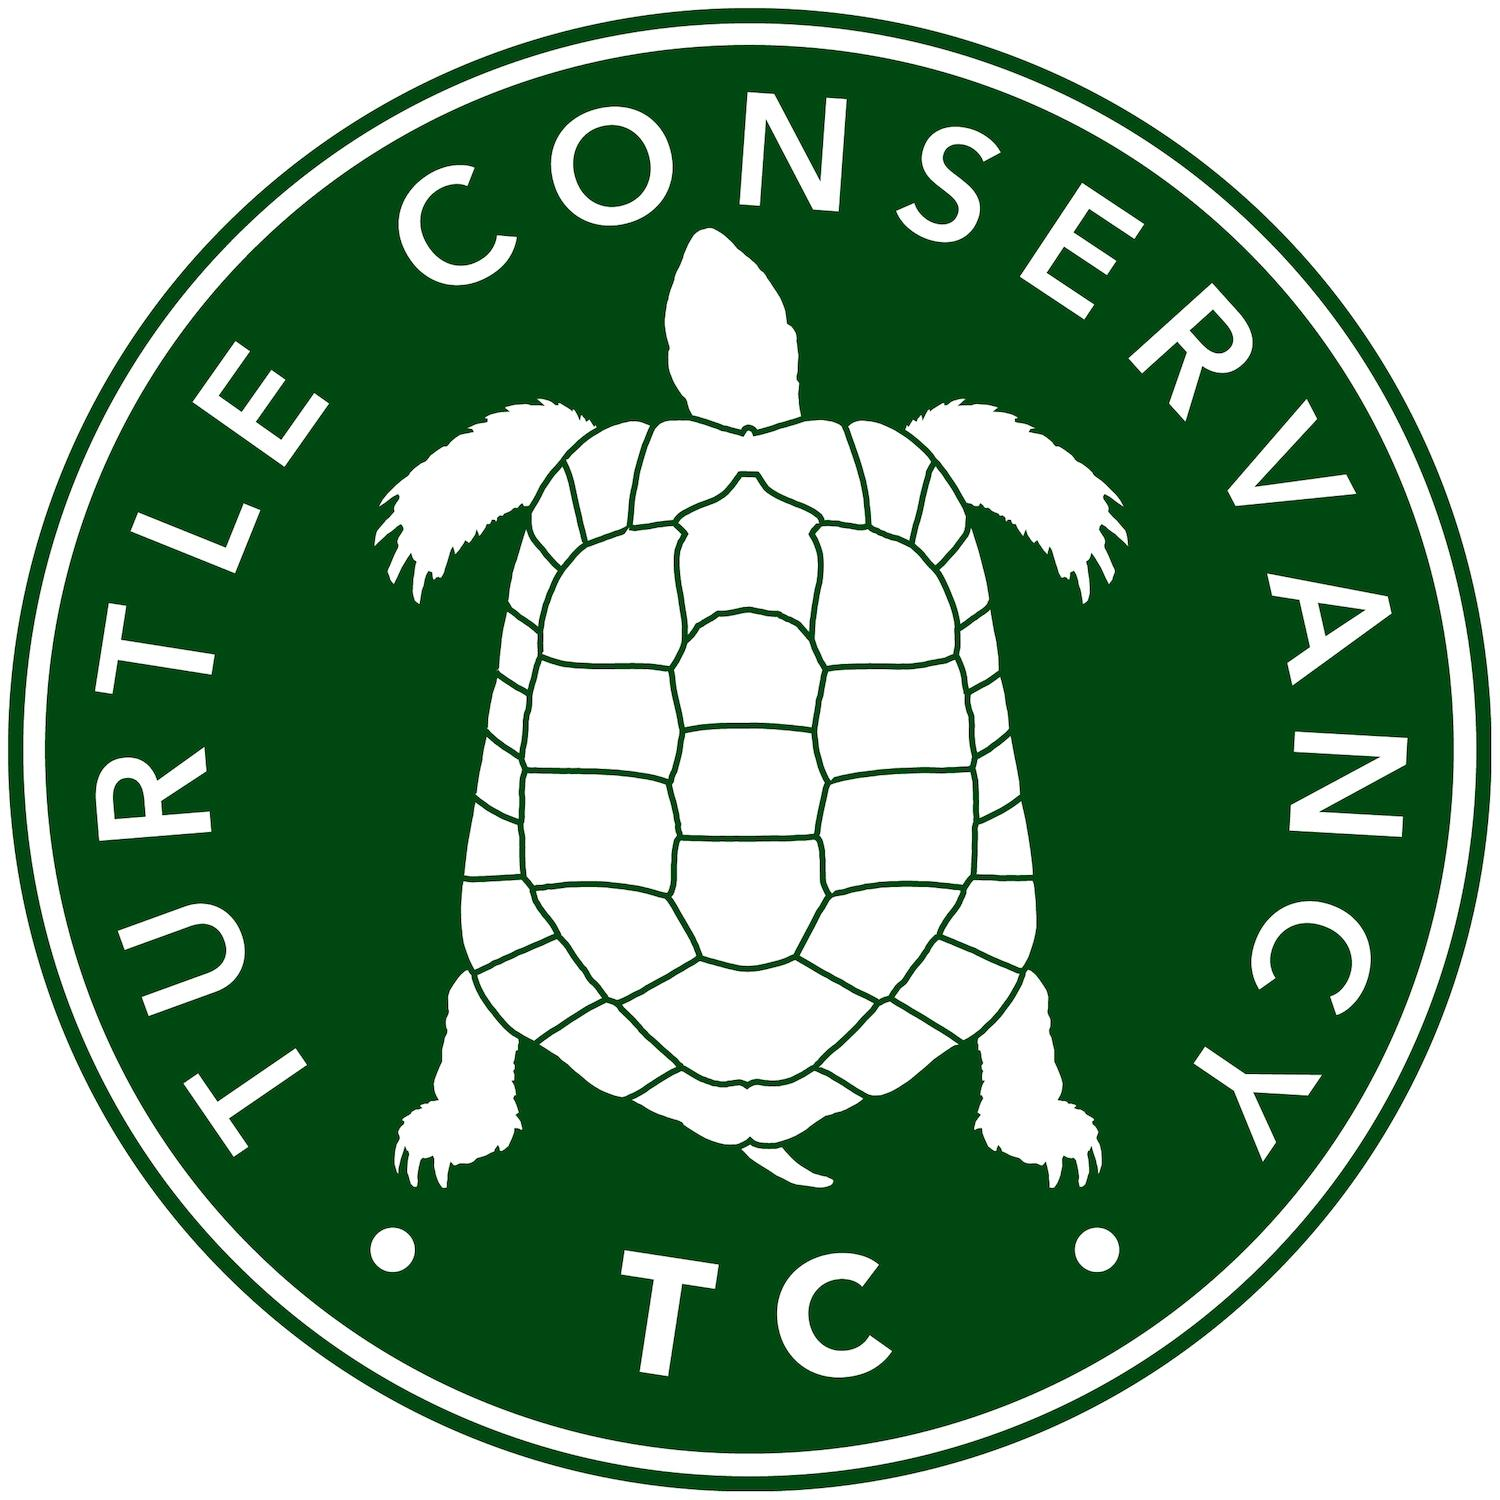 Turtle Conservancy logo